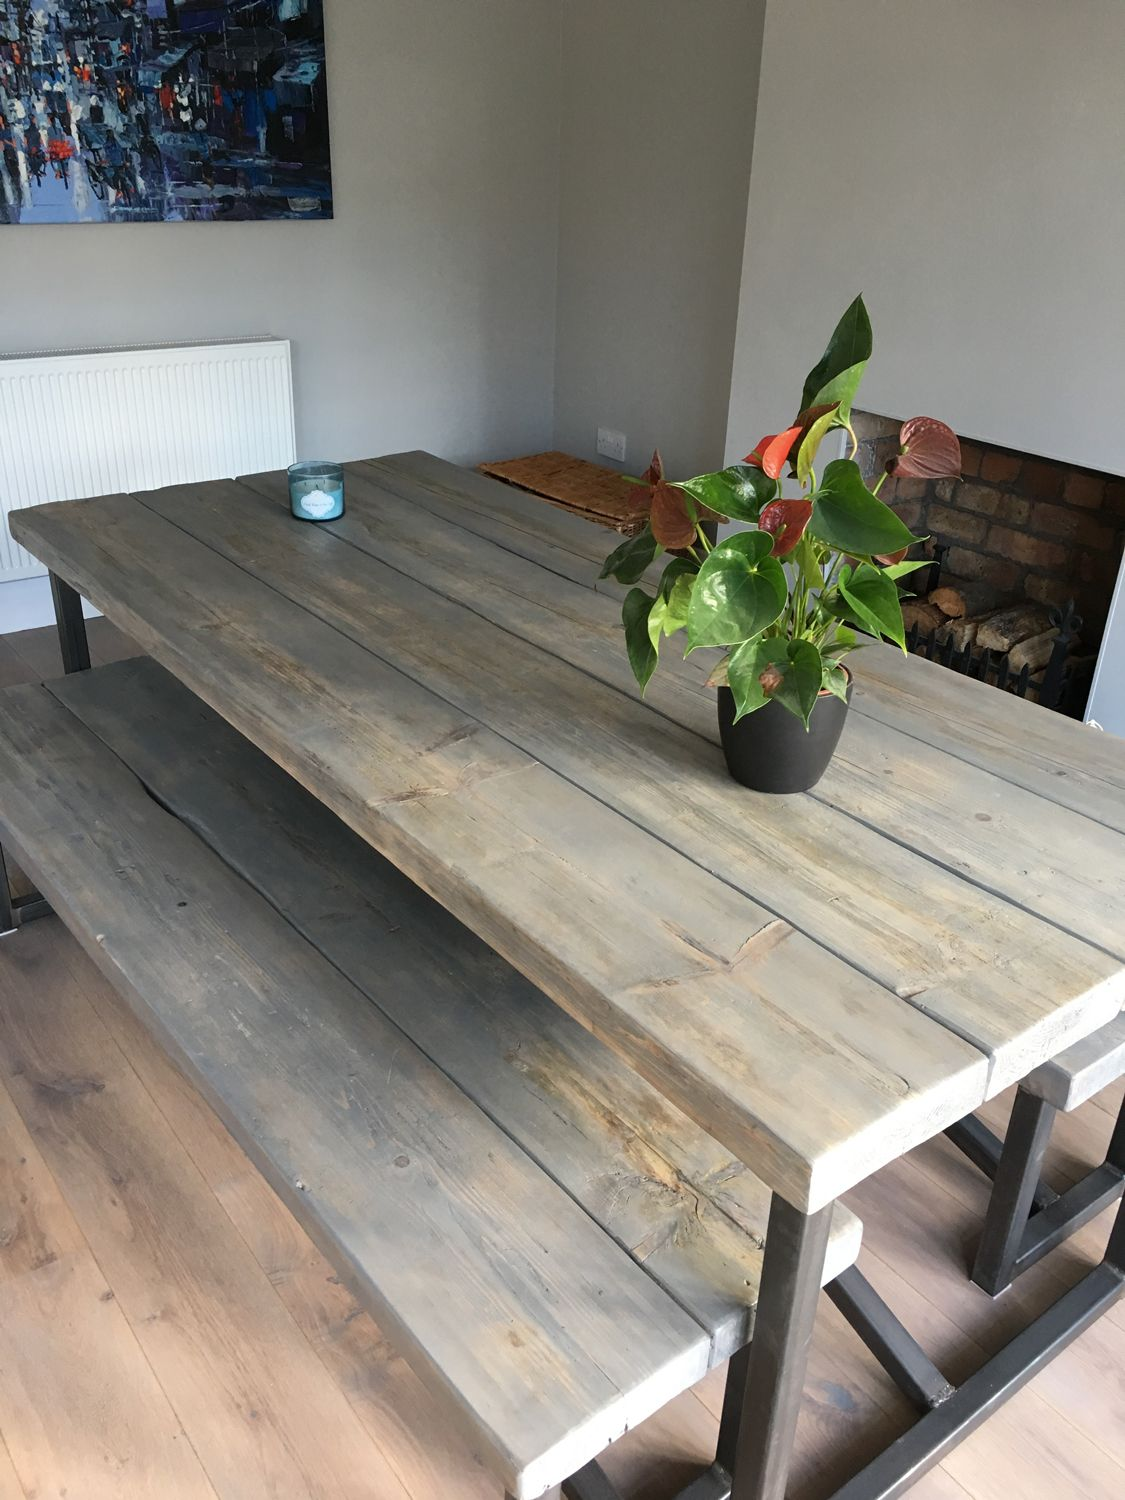 Industrial Style Reclaimed Wood Grey Washed Dining Table And Benches Www Reclaimedbespoke Co Uk Dining Table Reclaimed Wood Dining Table Wooden Garden Table